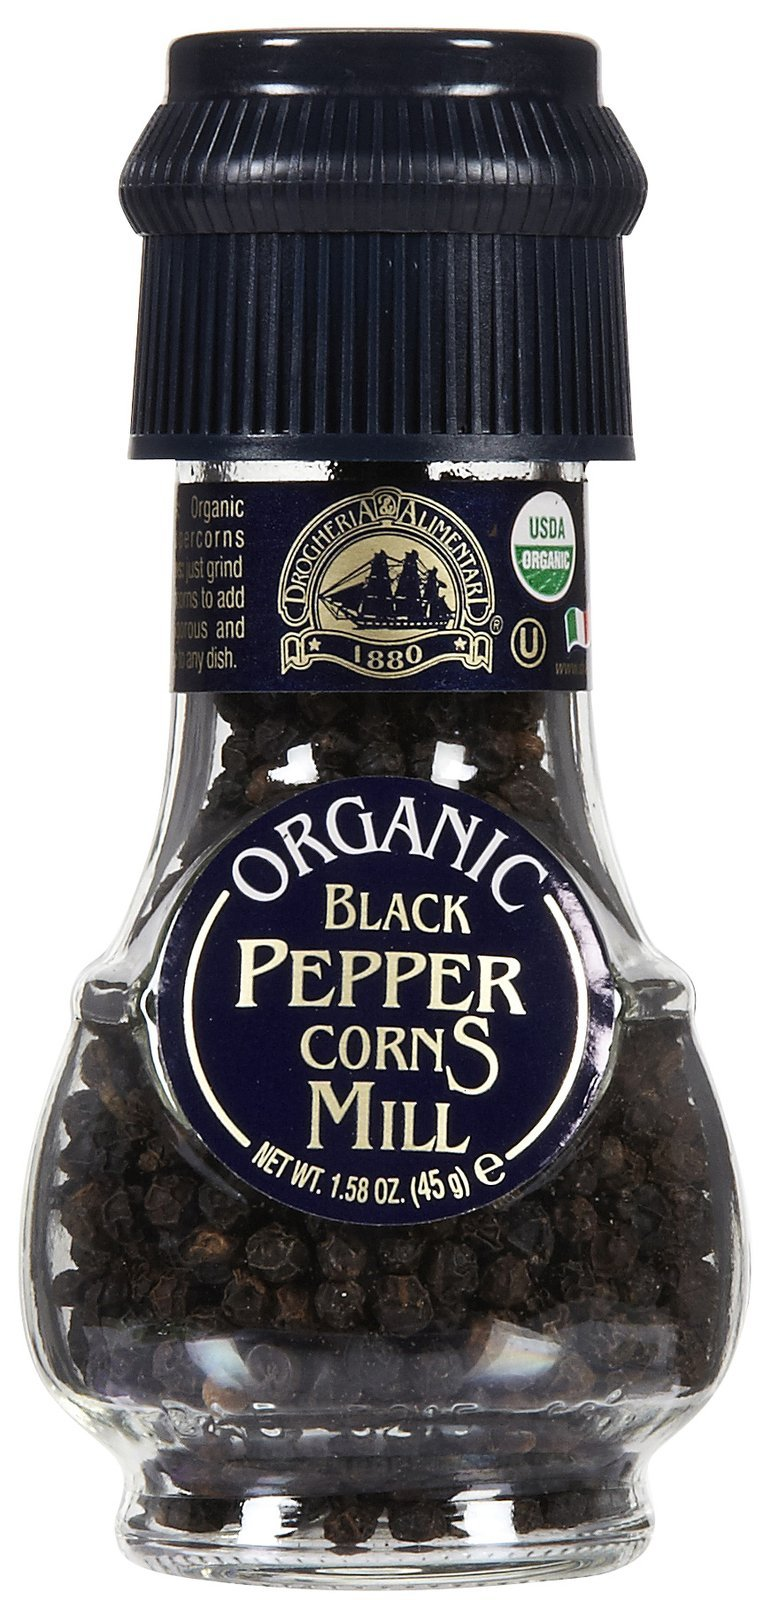 Drogheria & Alimentari organic black pepper corns mill 1.58 oz (pack of 6)